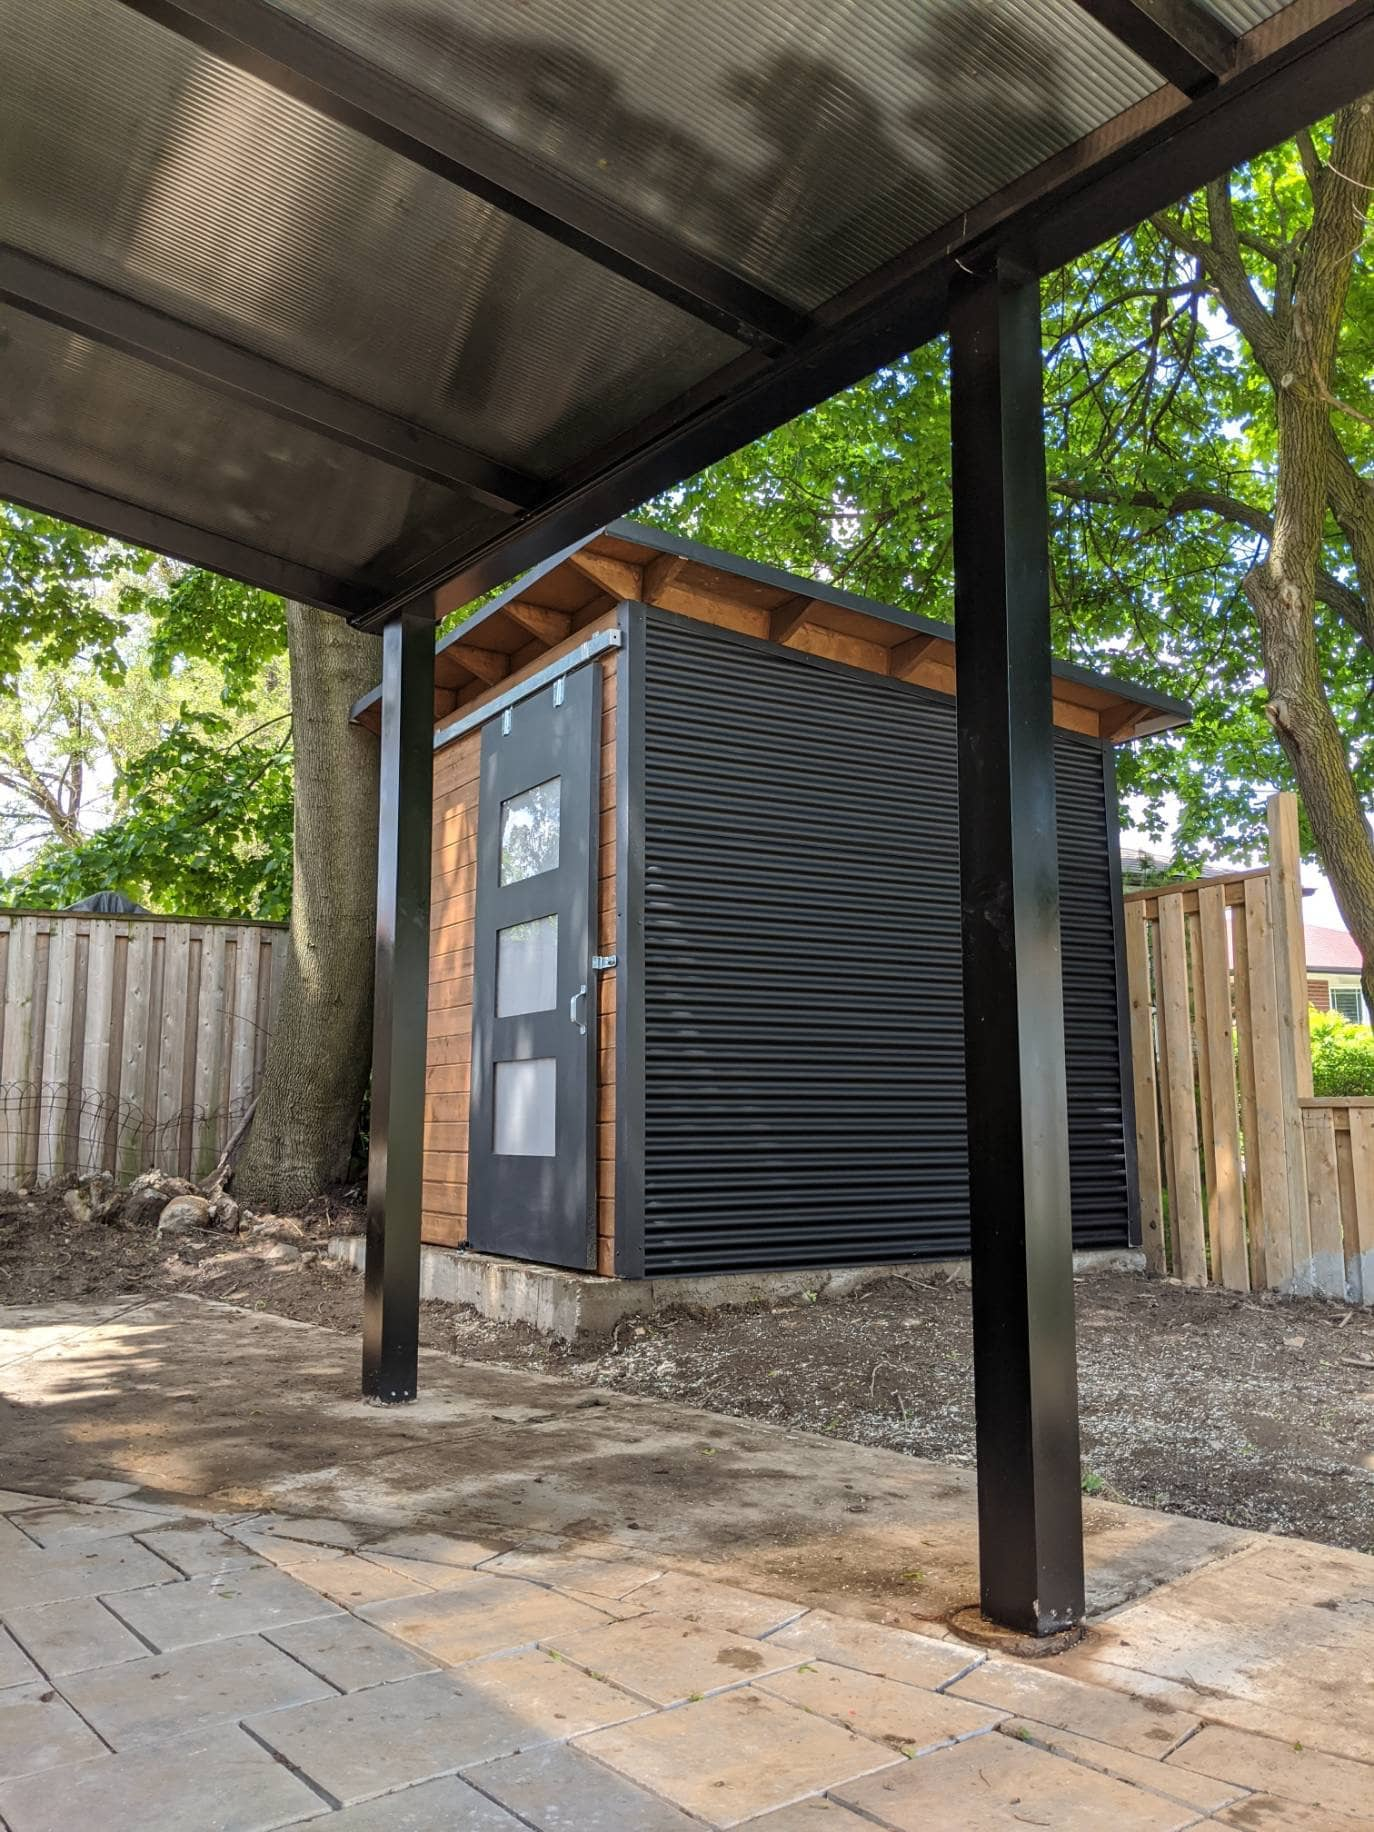 8'x 8' Essential Garden Shed with Muskoka Brown Stain and Charcoal Steel